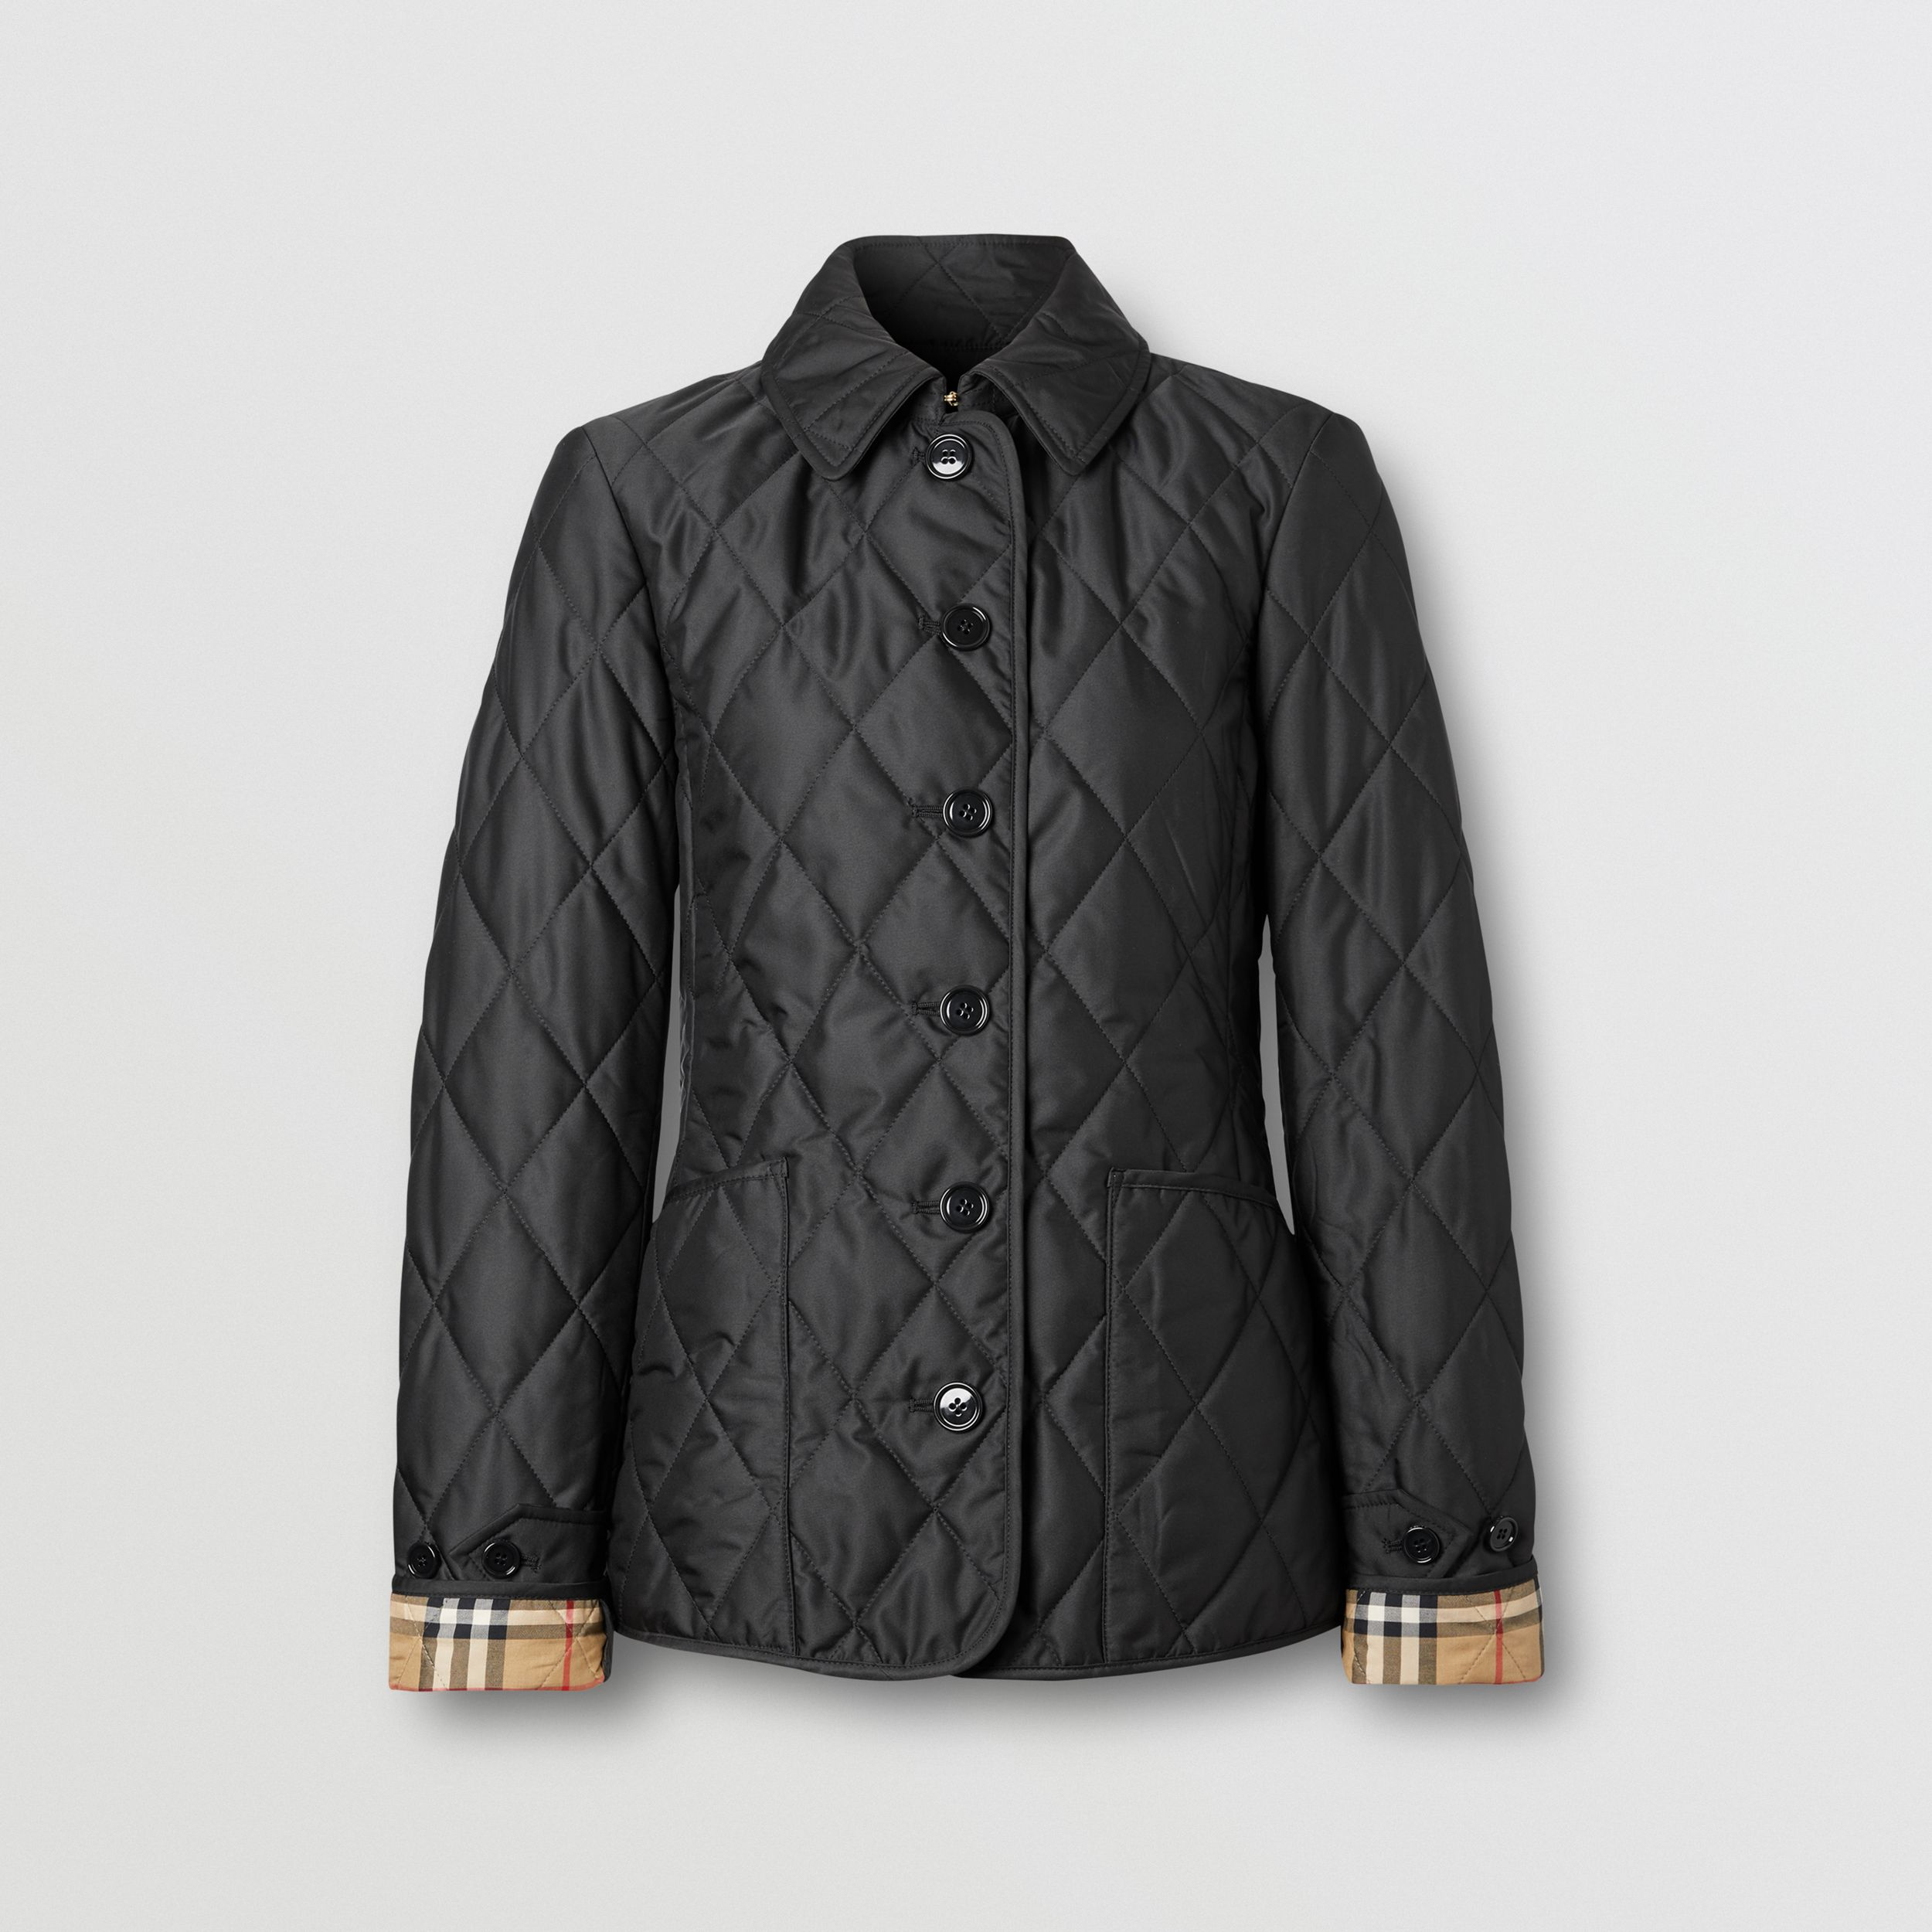 Diamond Quilted Thermoregulated Jacket in Black - Women | Burberry - 4